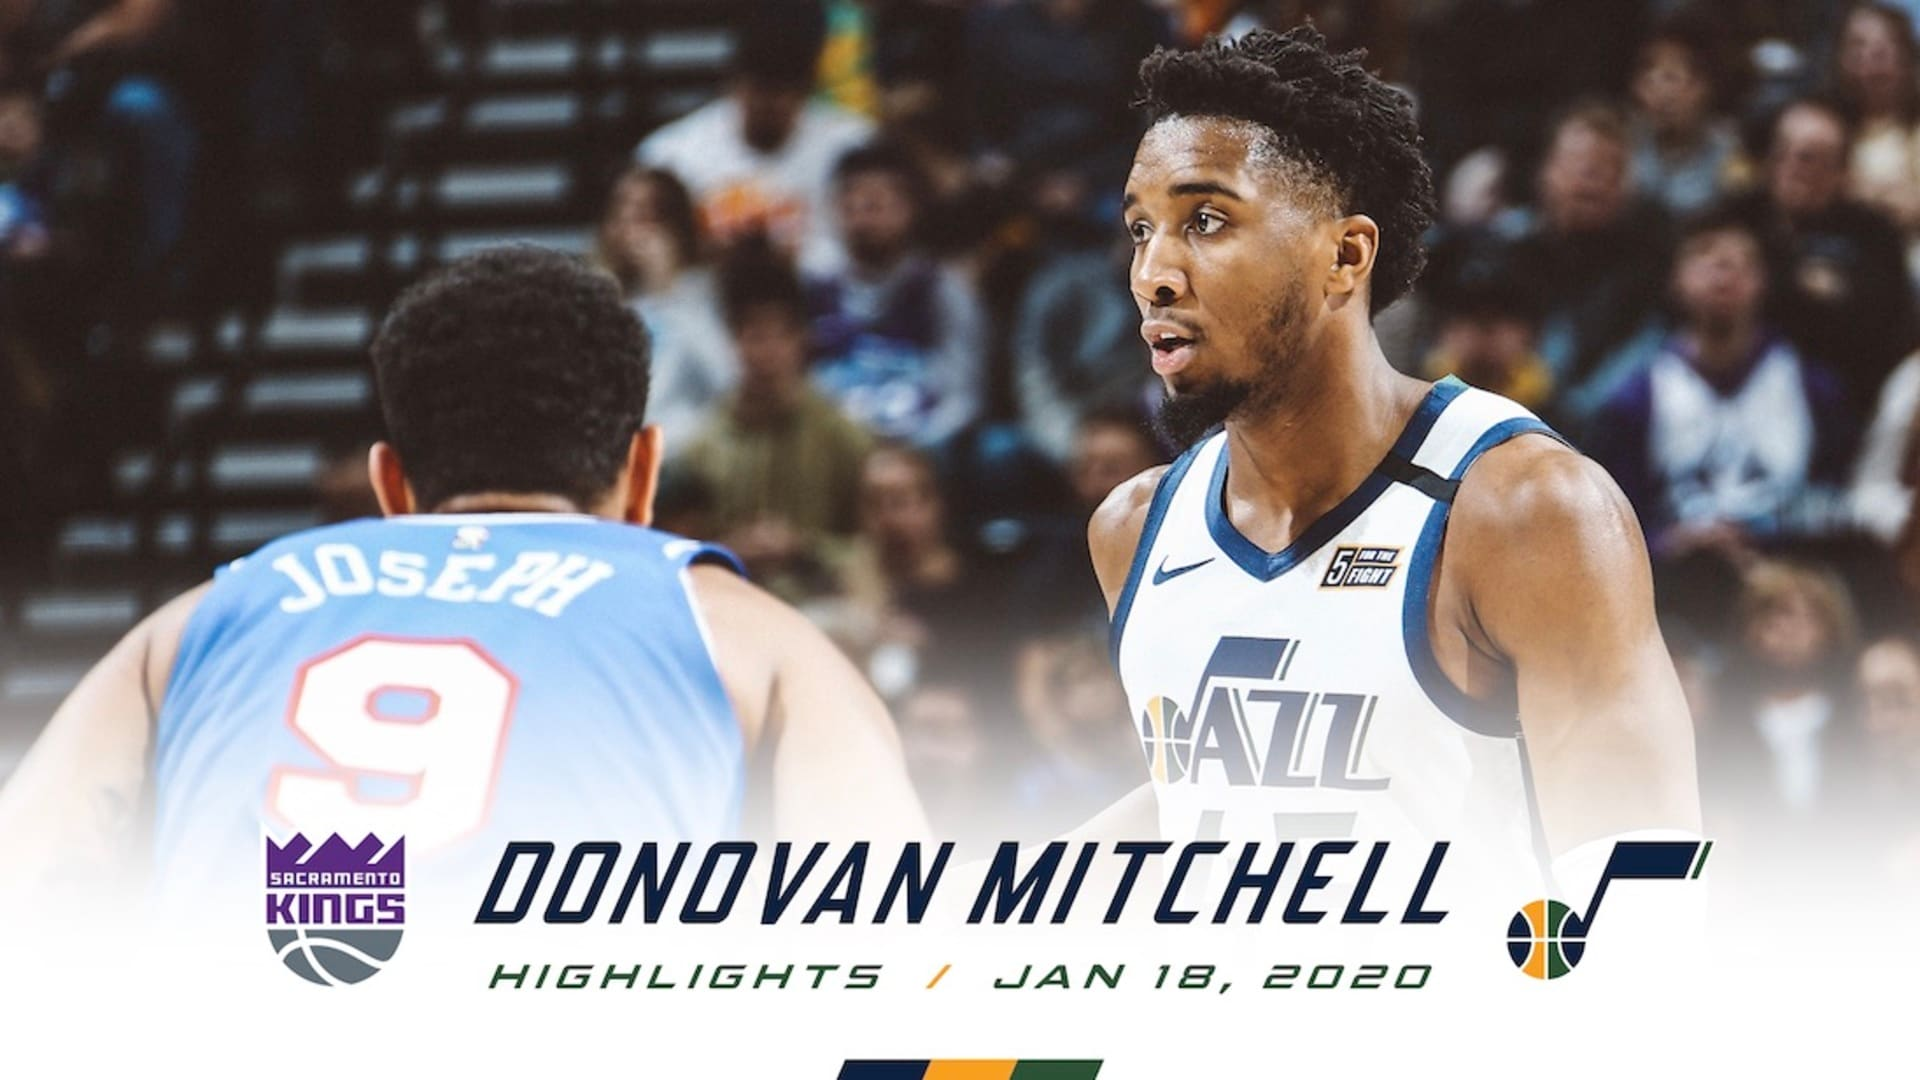 Highlights: Donovan Mitchell — 22 points, 4 rebounds